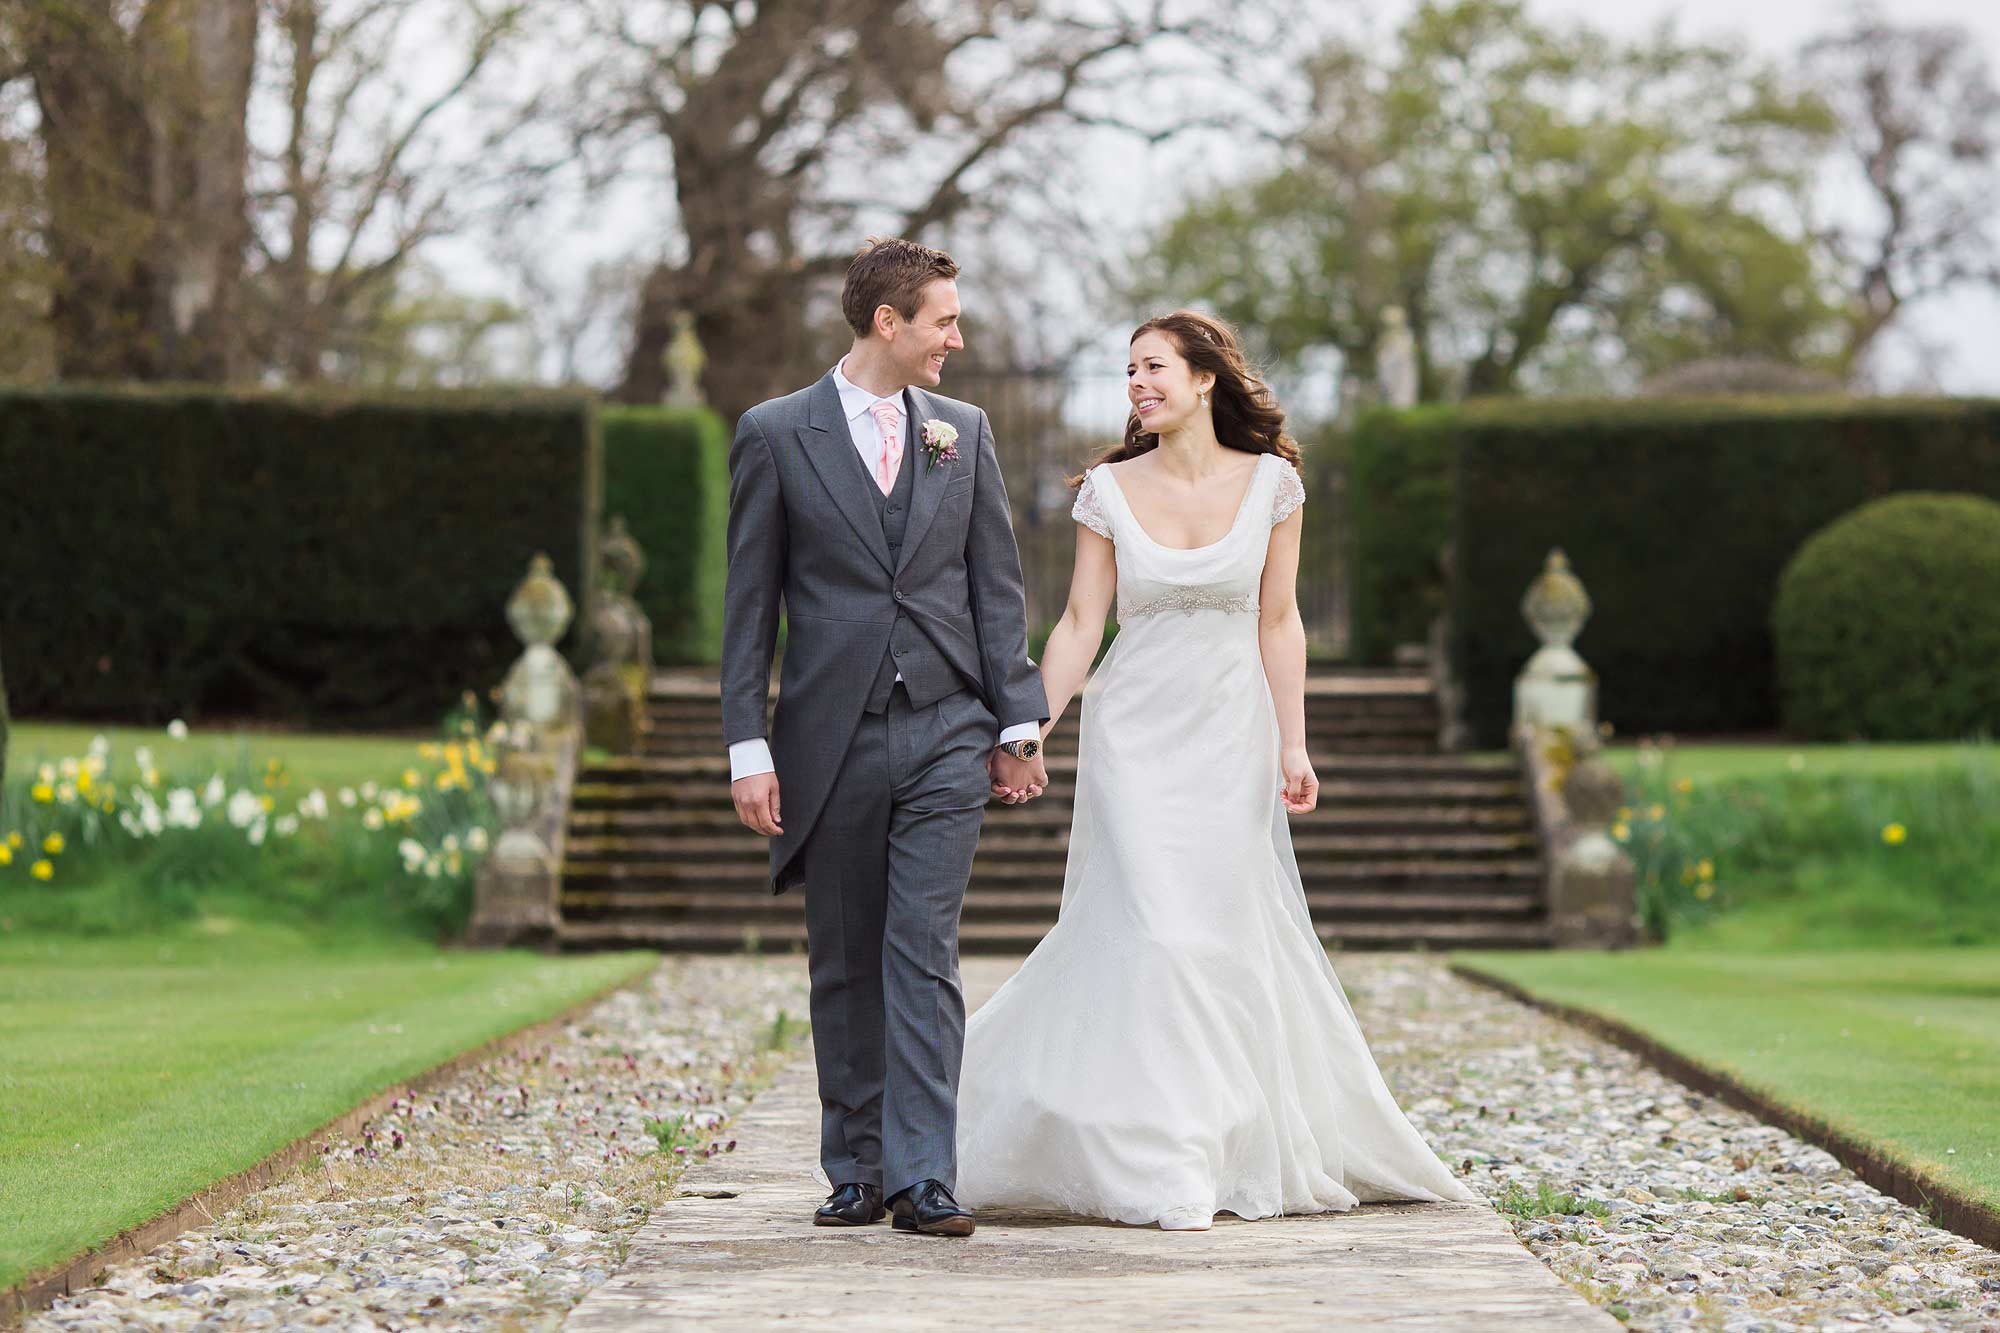 Amy & Jack take a stroll for their official wedding photos at Hengrave Hall